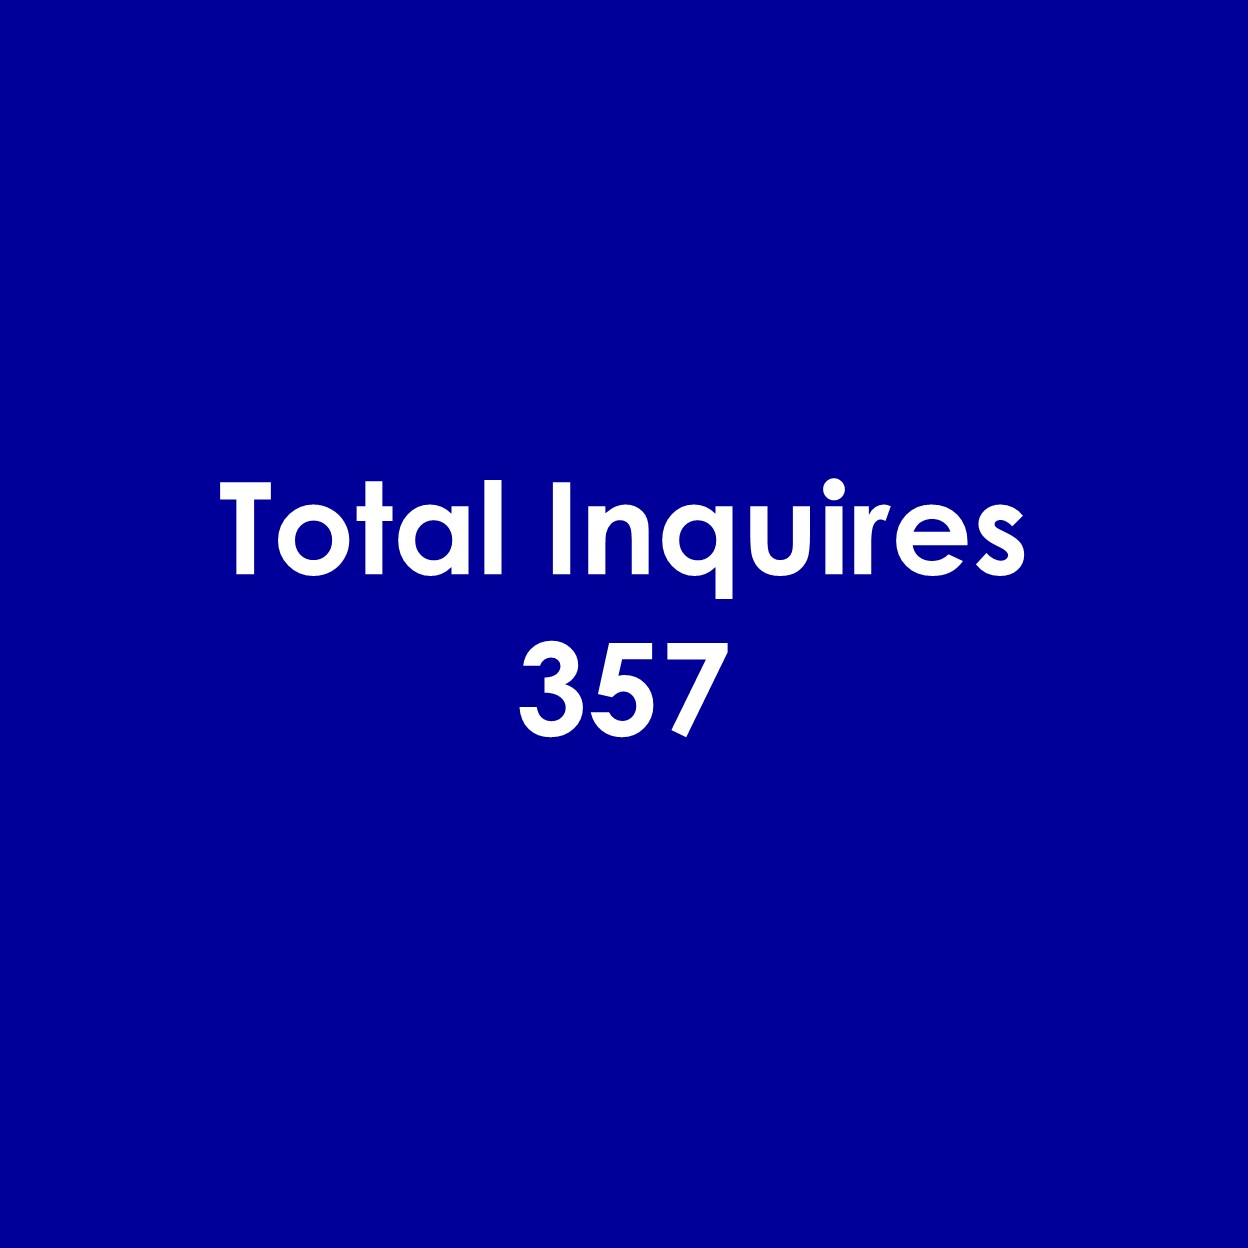 The Wynn Group's Total Inquires